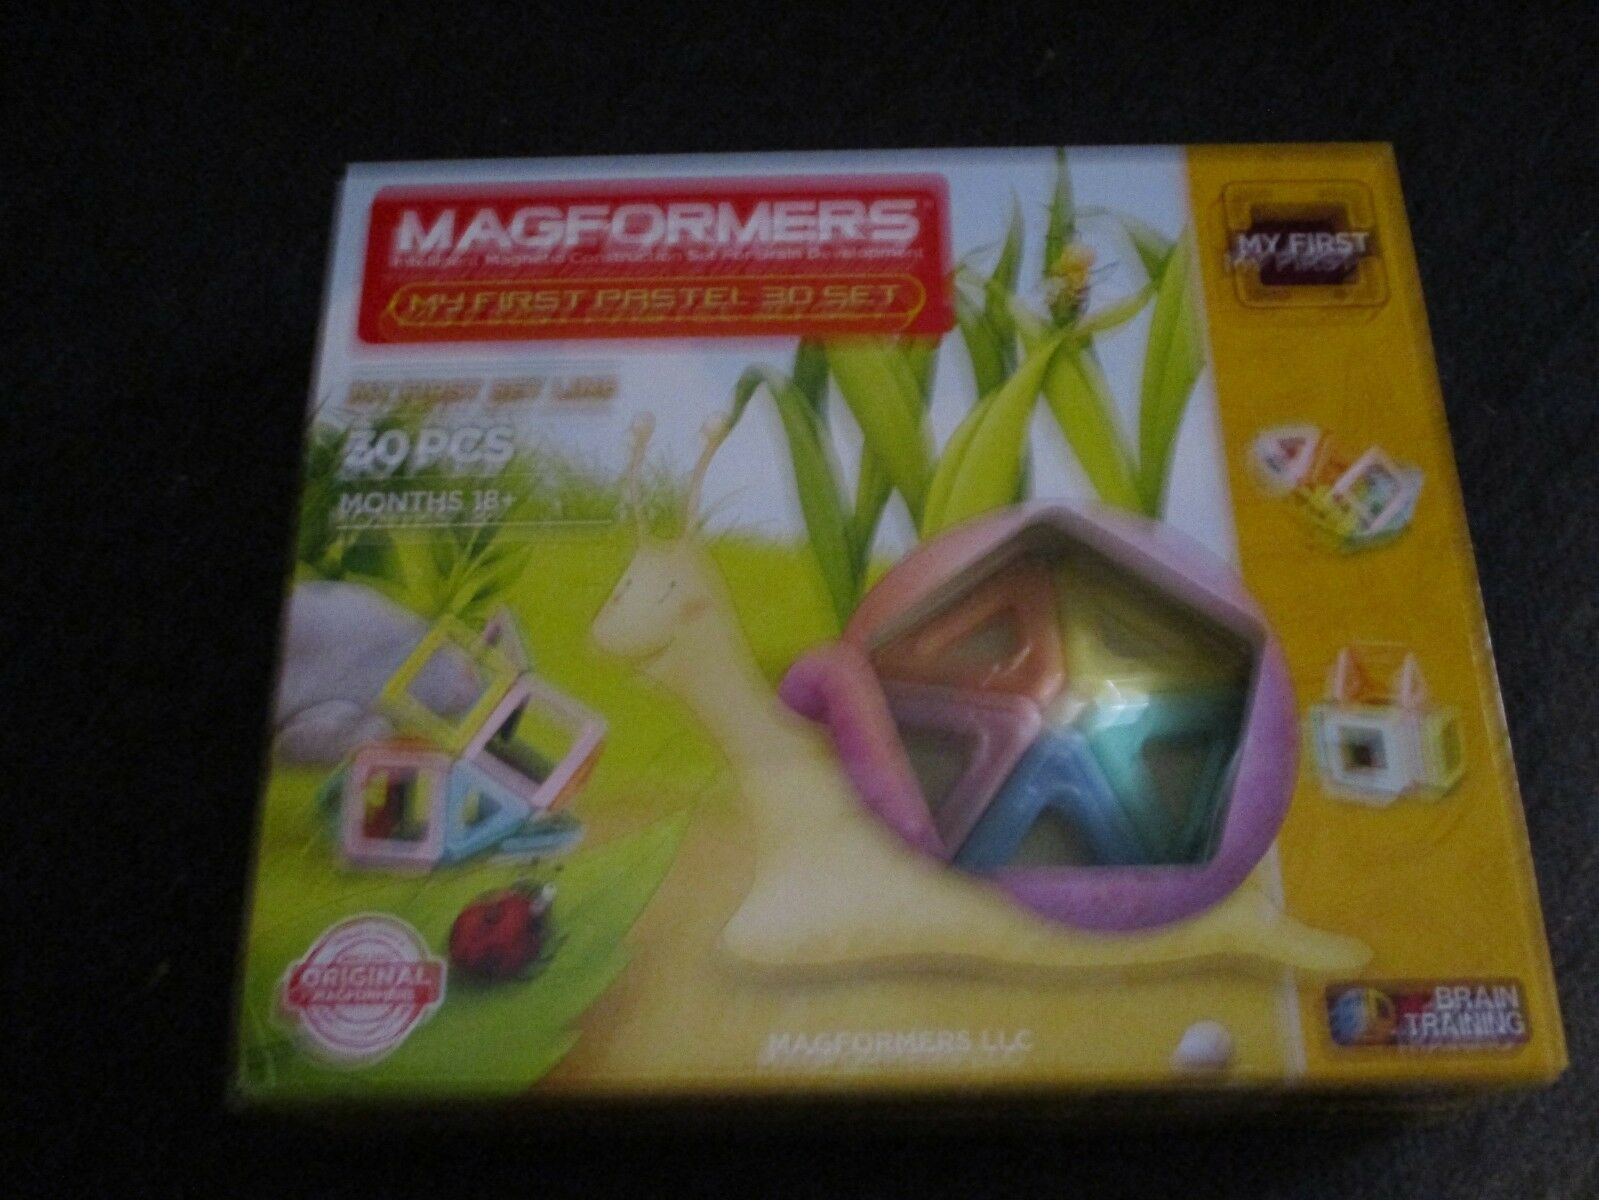 My First Magformers 30 Pieces Magnetic Shapes 3D Building Construction Toy